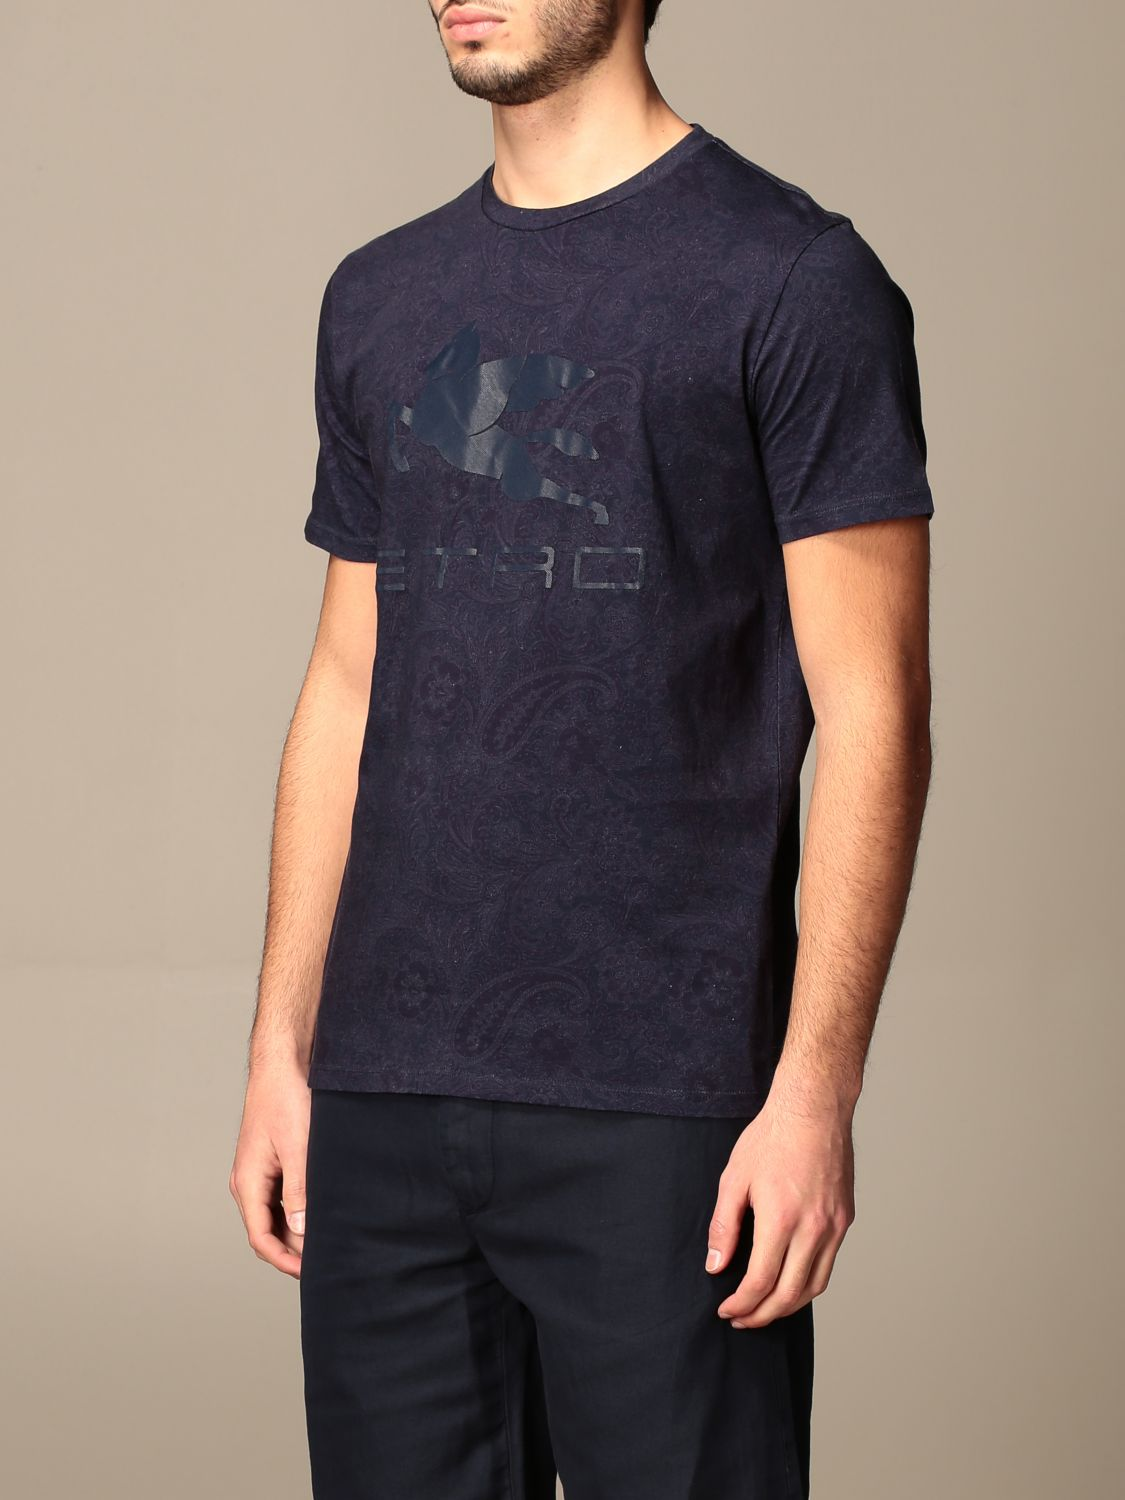 T-shirt Etro: Etro t-shirt in paisley patterned cotton with Pegasus gnawed blue 4